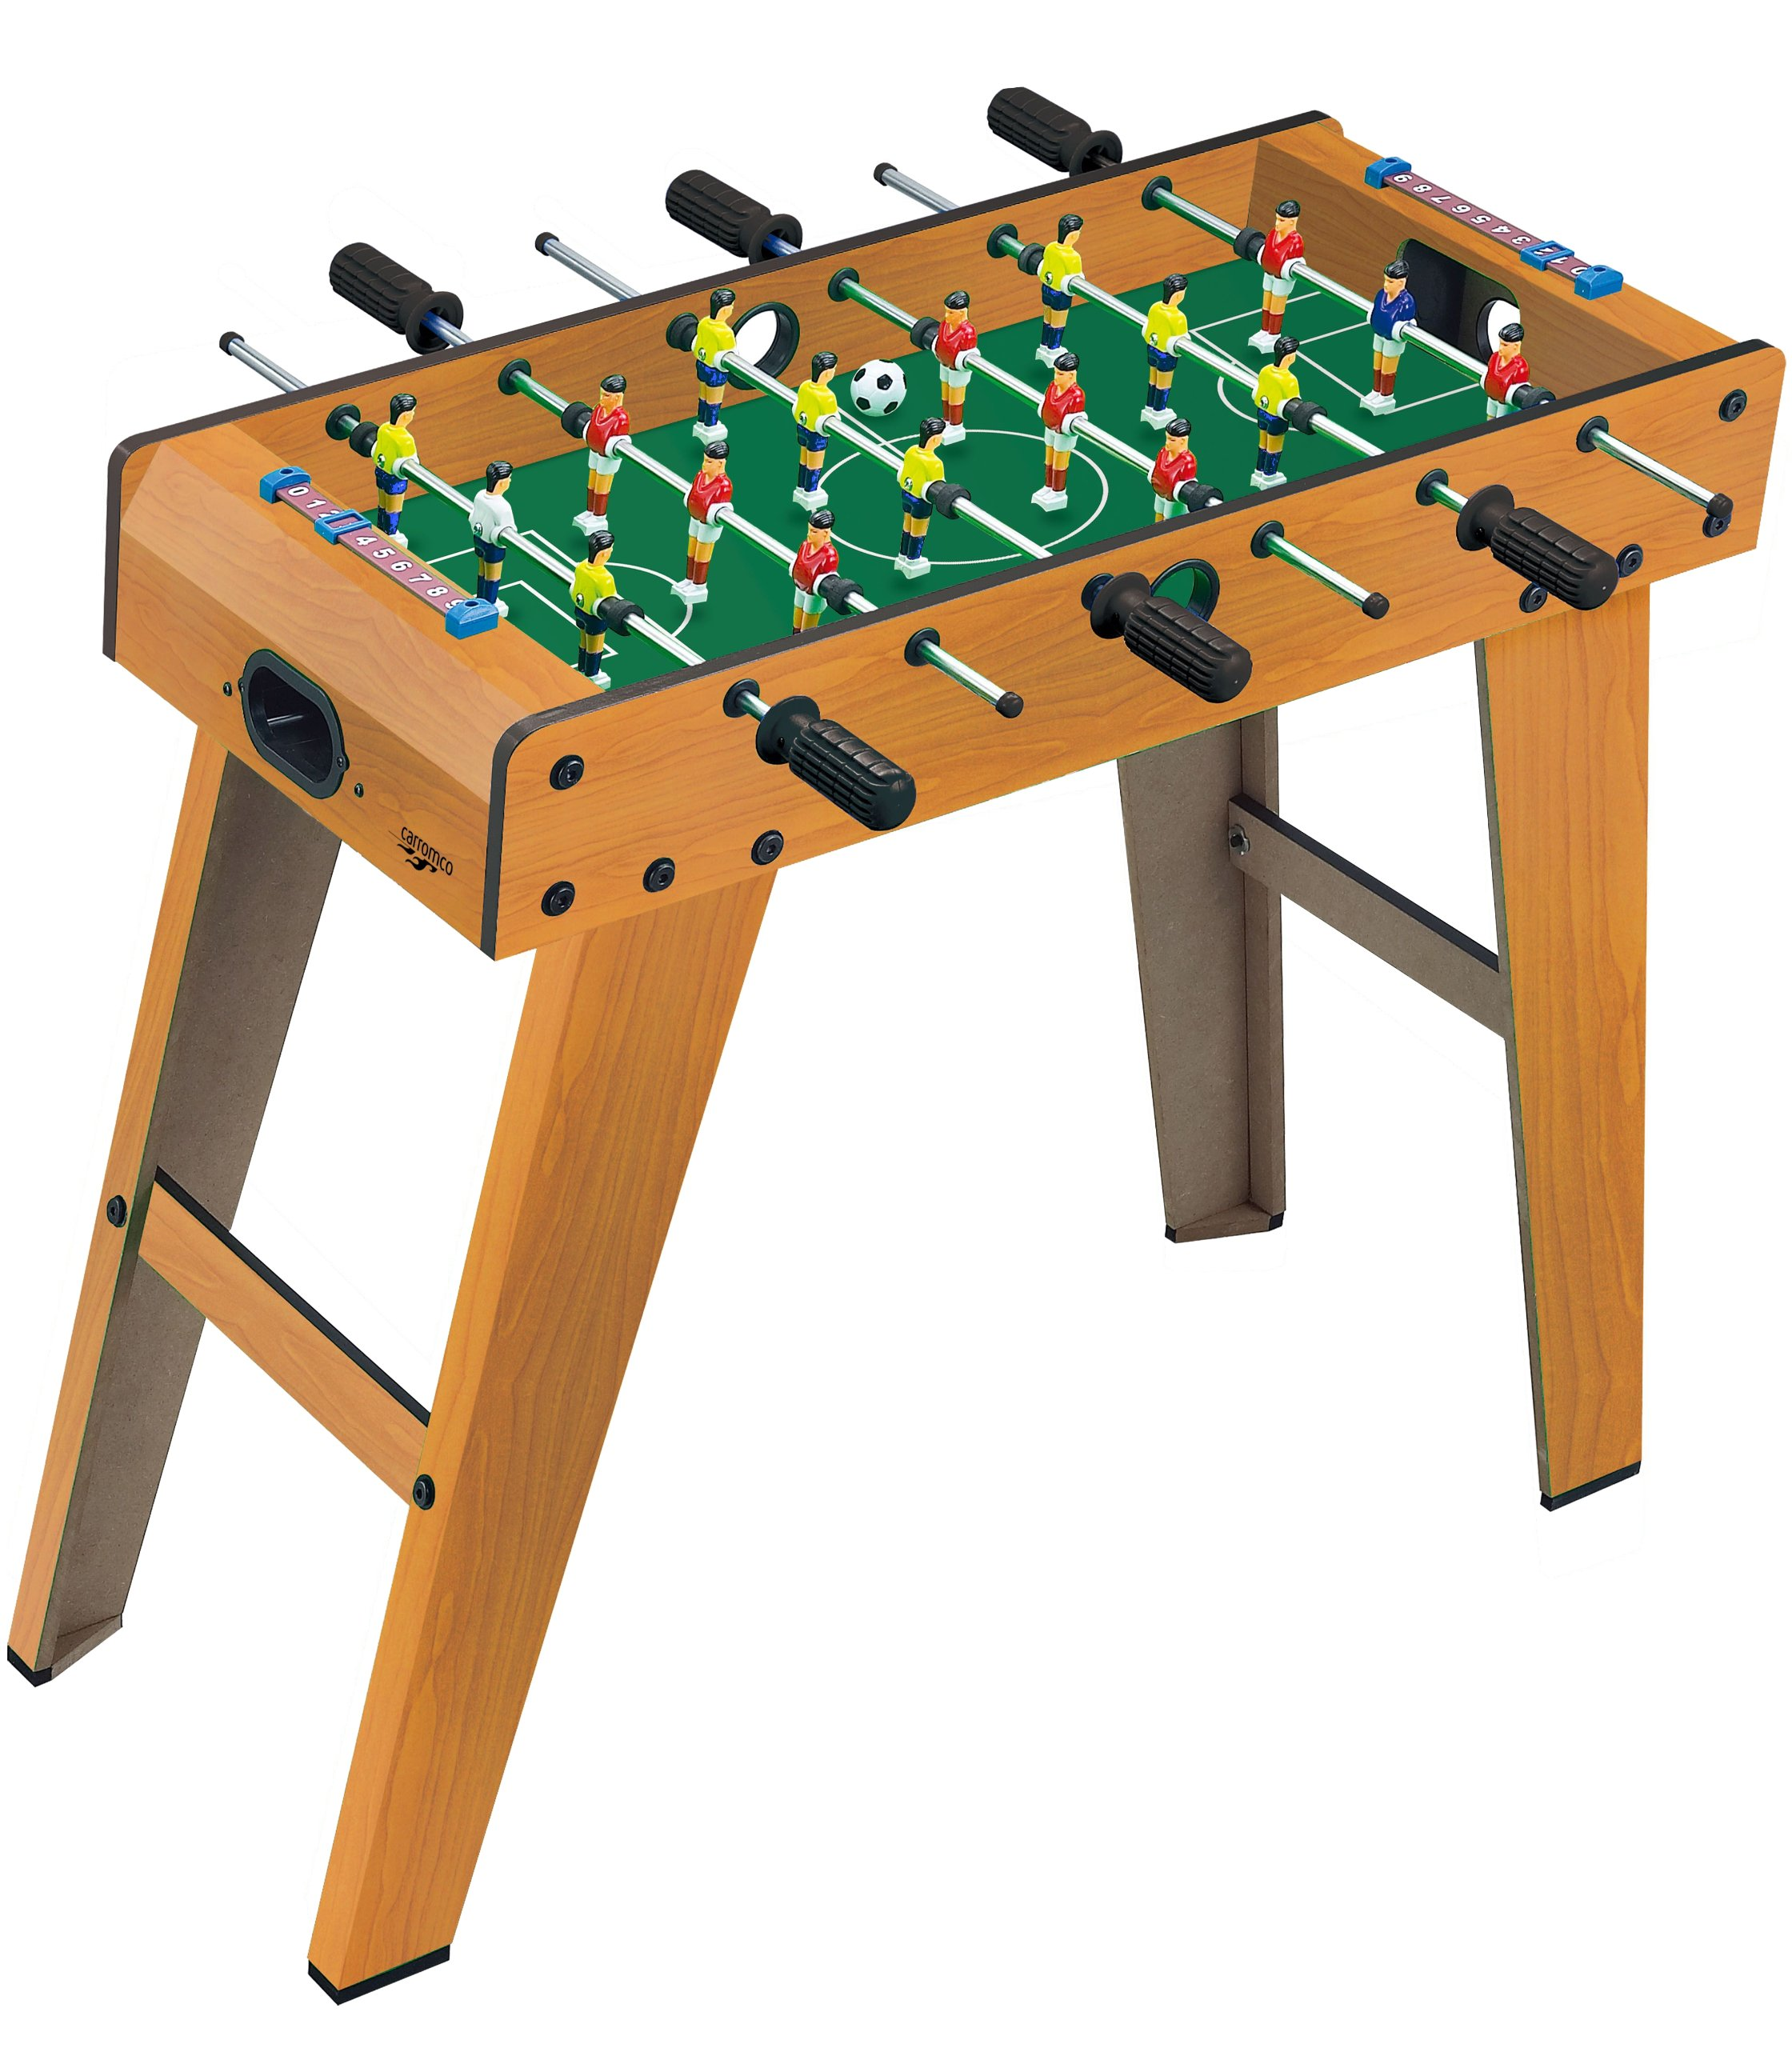 Carromco Futbolín Kick-XL, 05009: Carromco 05009 ...